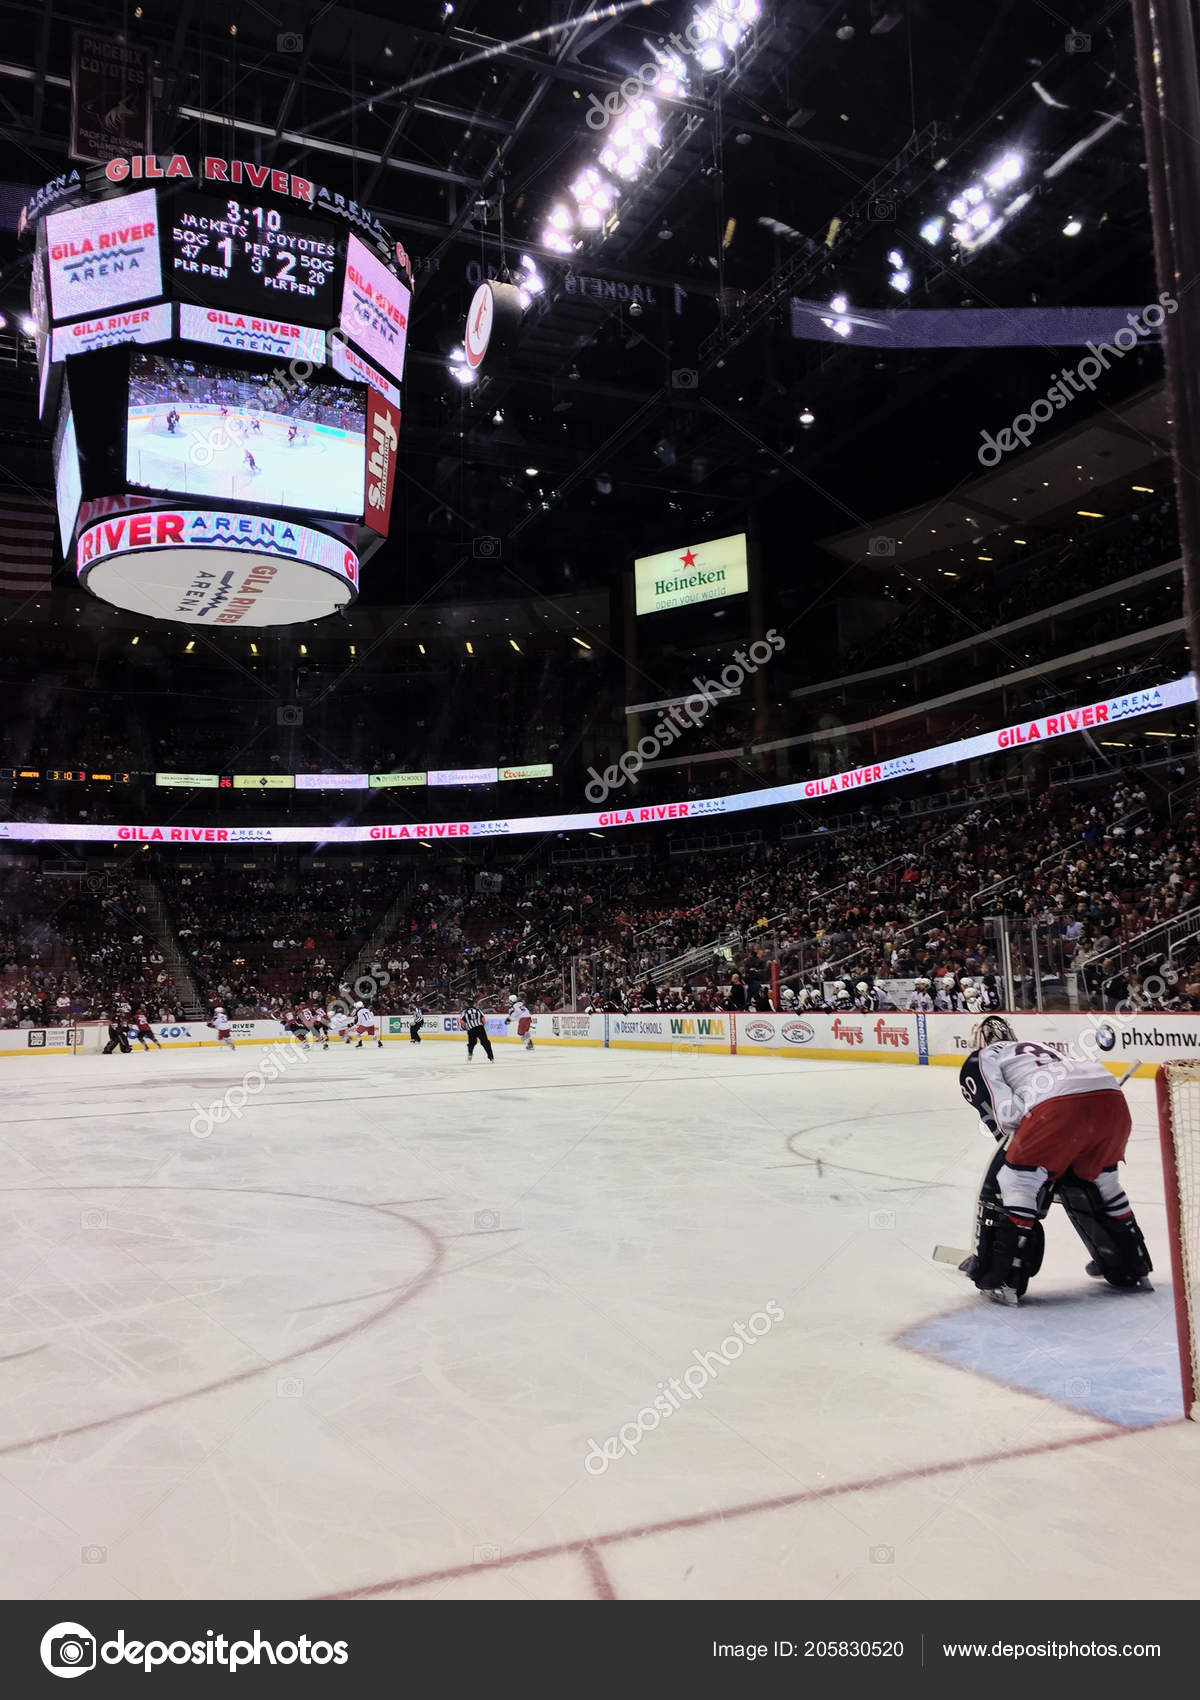 Gala River Arena Home Phoenix Coyotes Nhl Hockey Game Being Stock